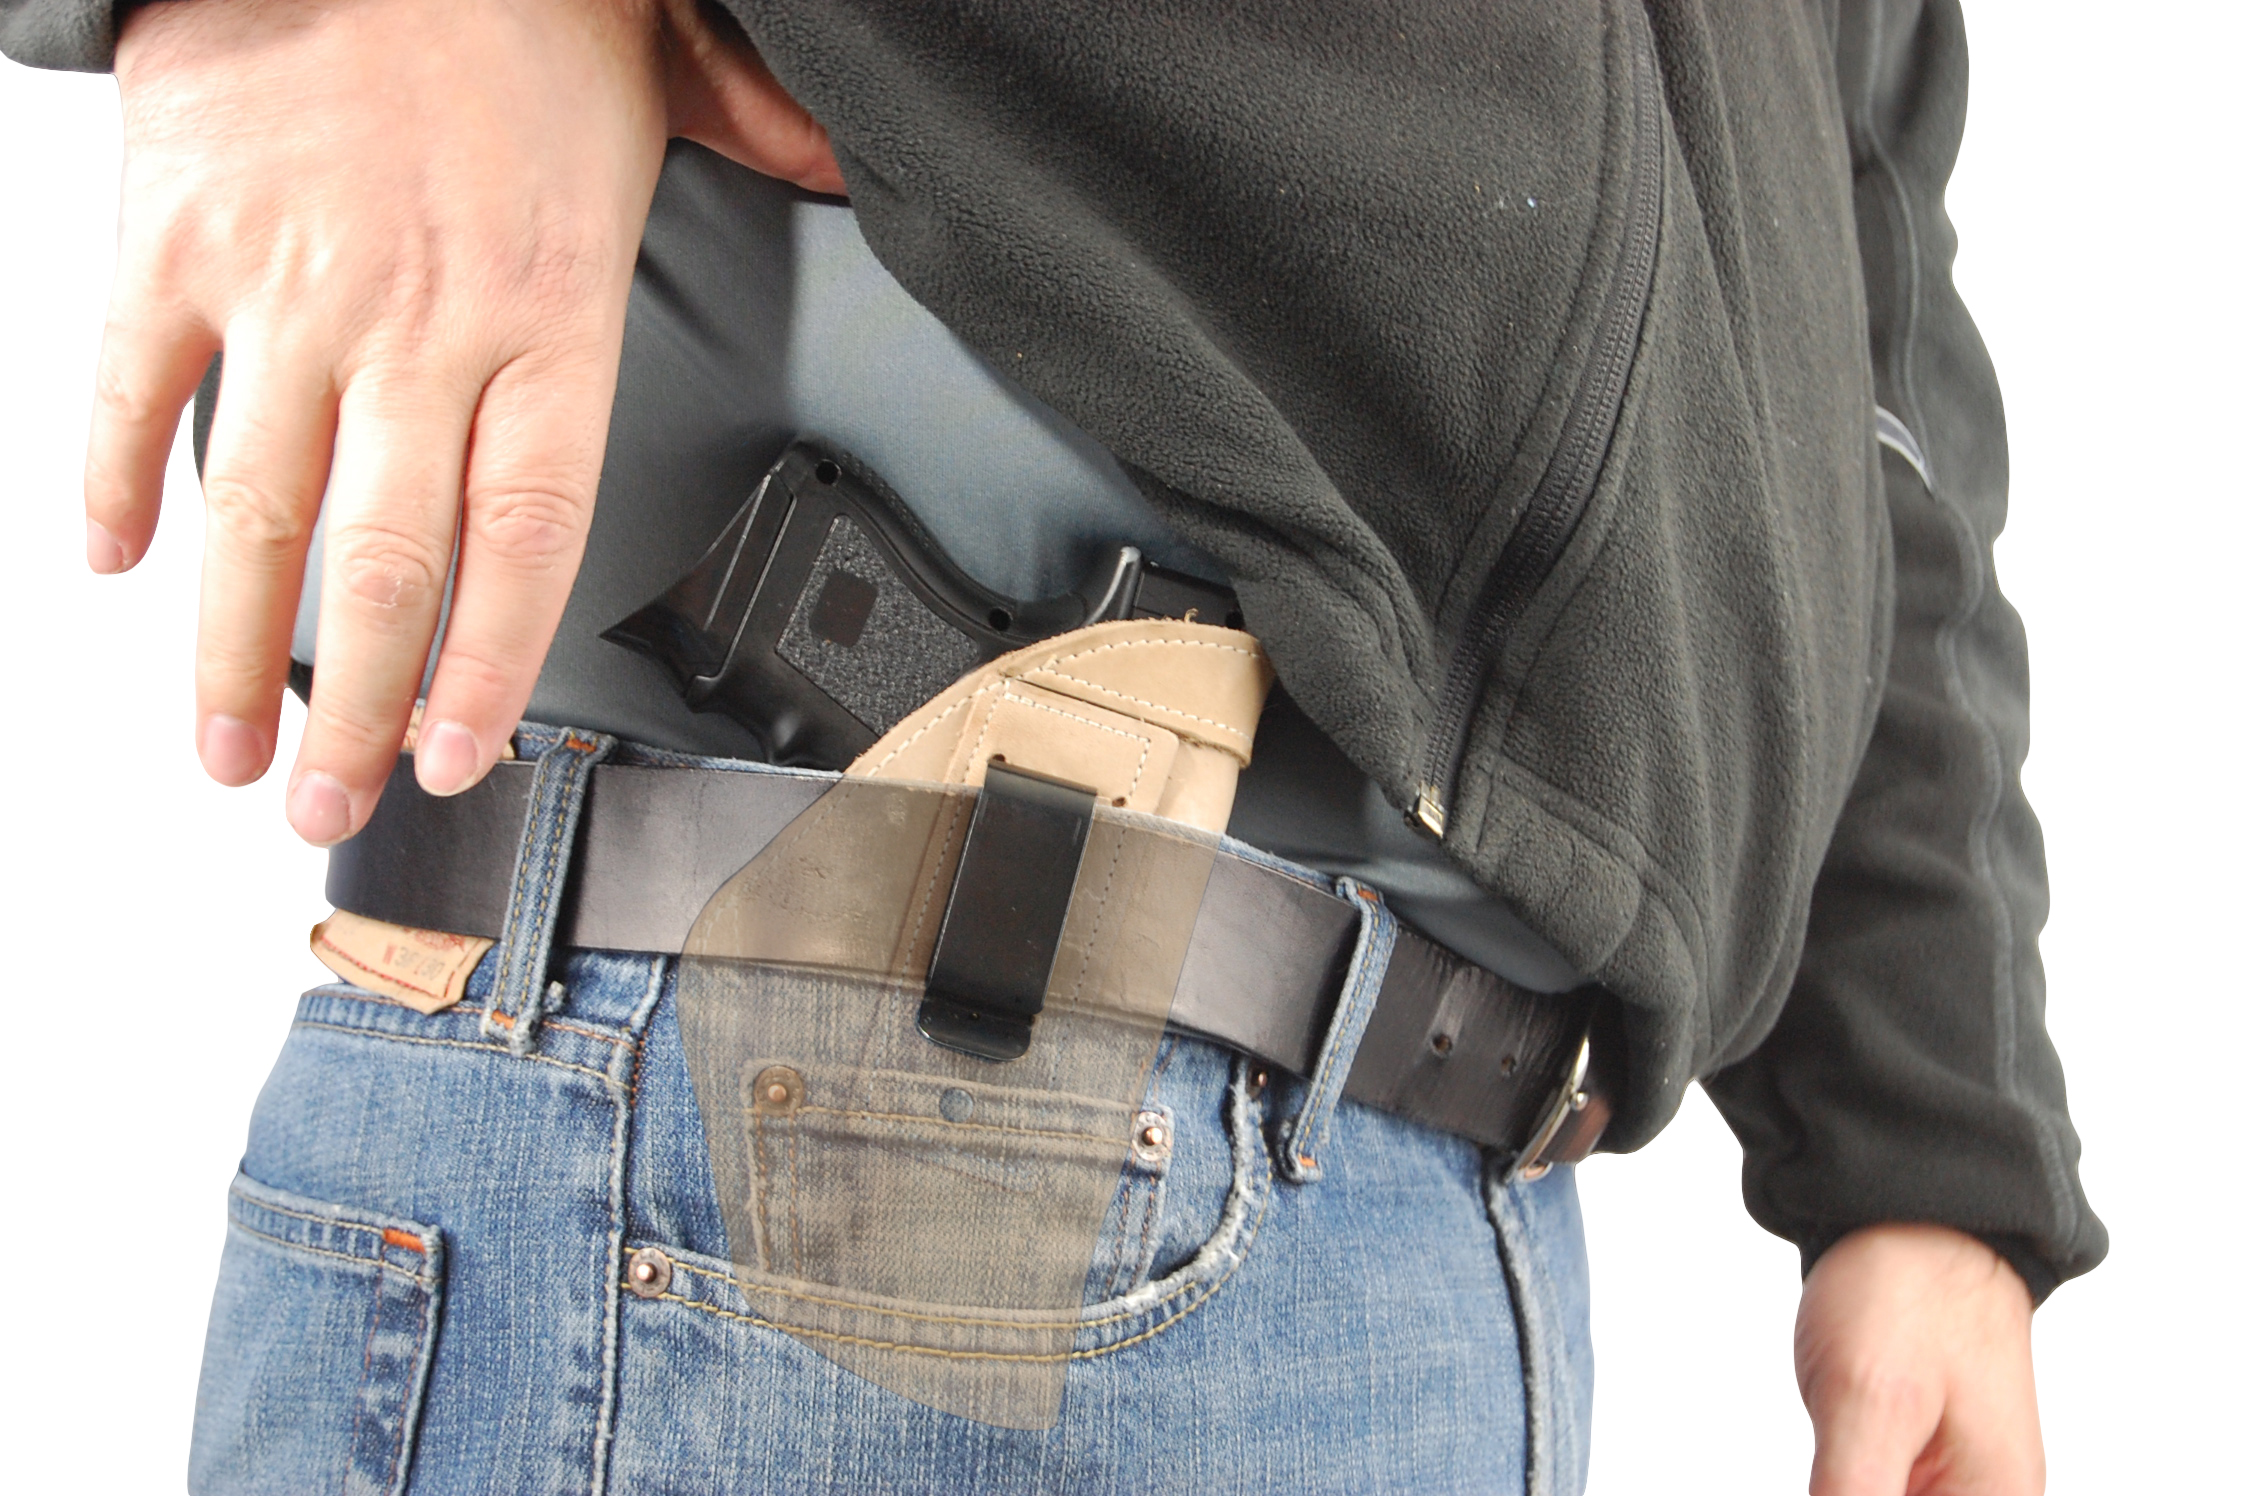 Barsony Holsters and Belts New Barsony Springfield XDM Compact 9mm 40 45 Tan Leather IWB Gun Holster for Compact Sub-Compact 9mm 40 45 at Sears.com